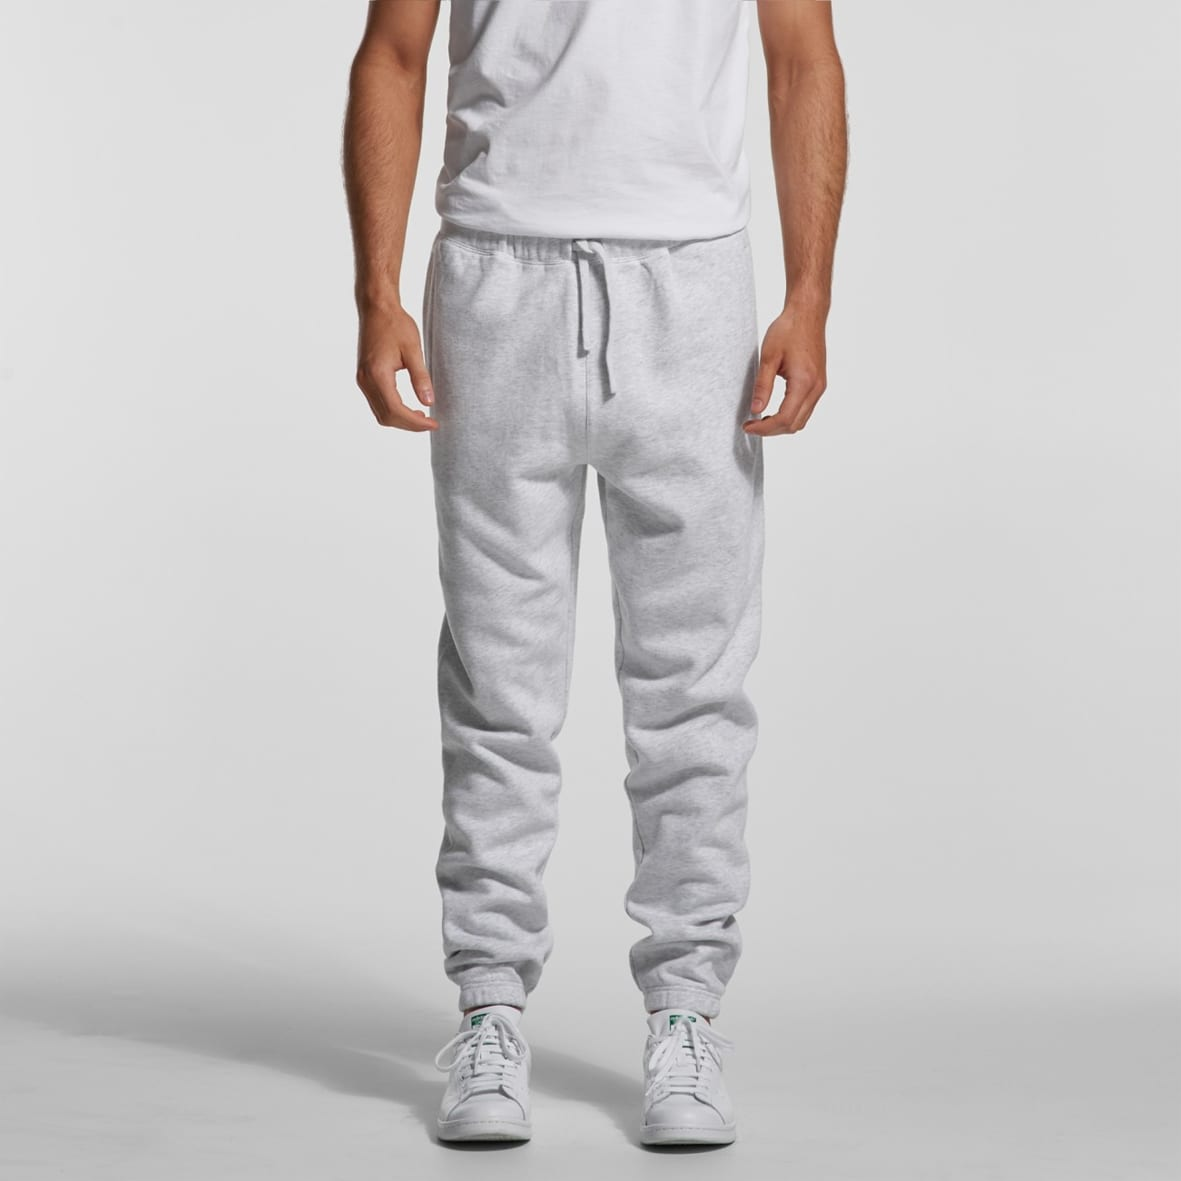 AS 5917 Surplus Track Pants